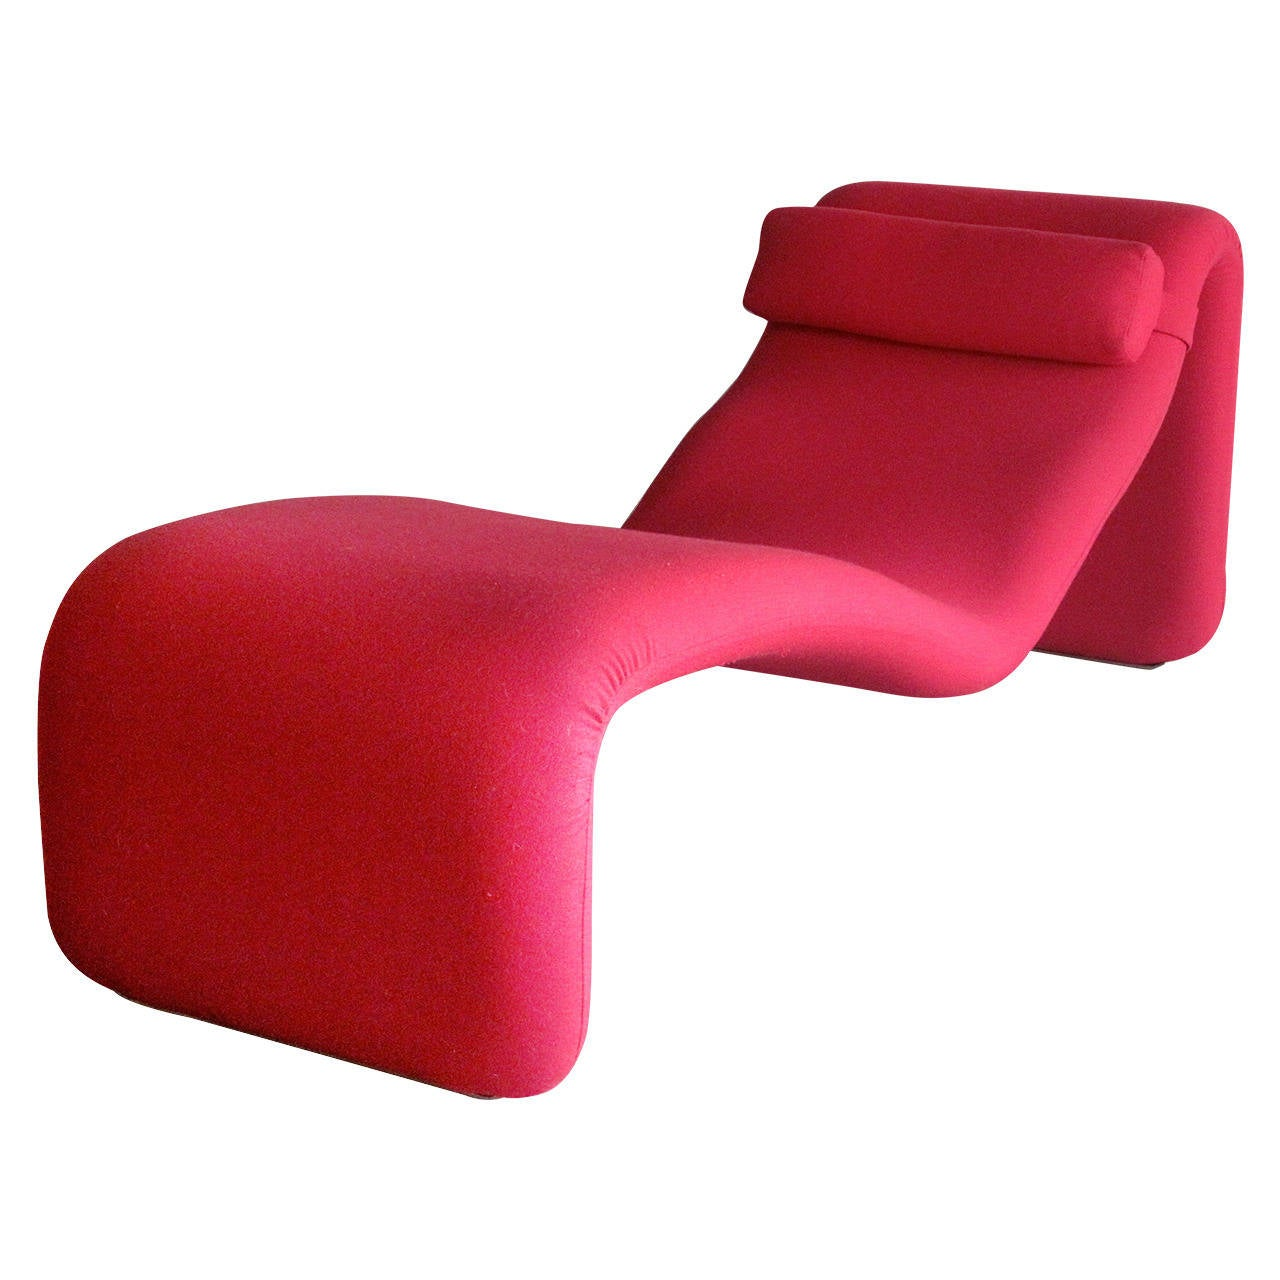 Olivier mourgue 39 djinn 39 chaise longue made by airborne for Chaise longue france